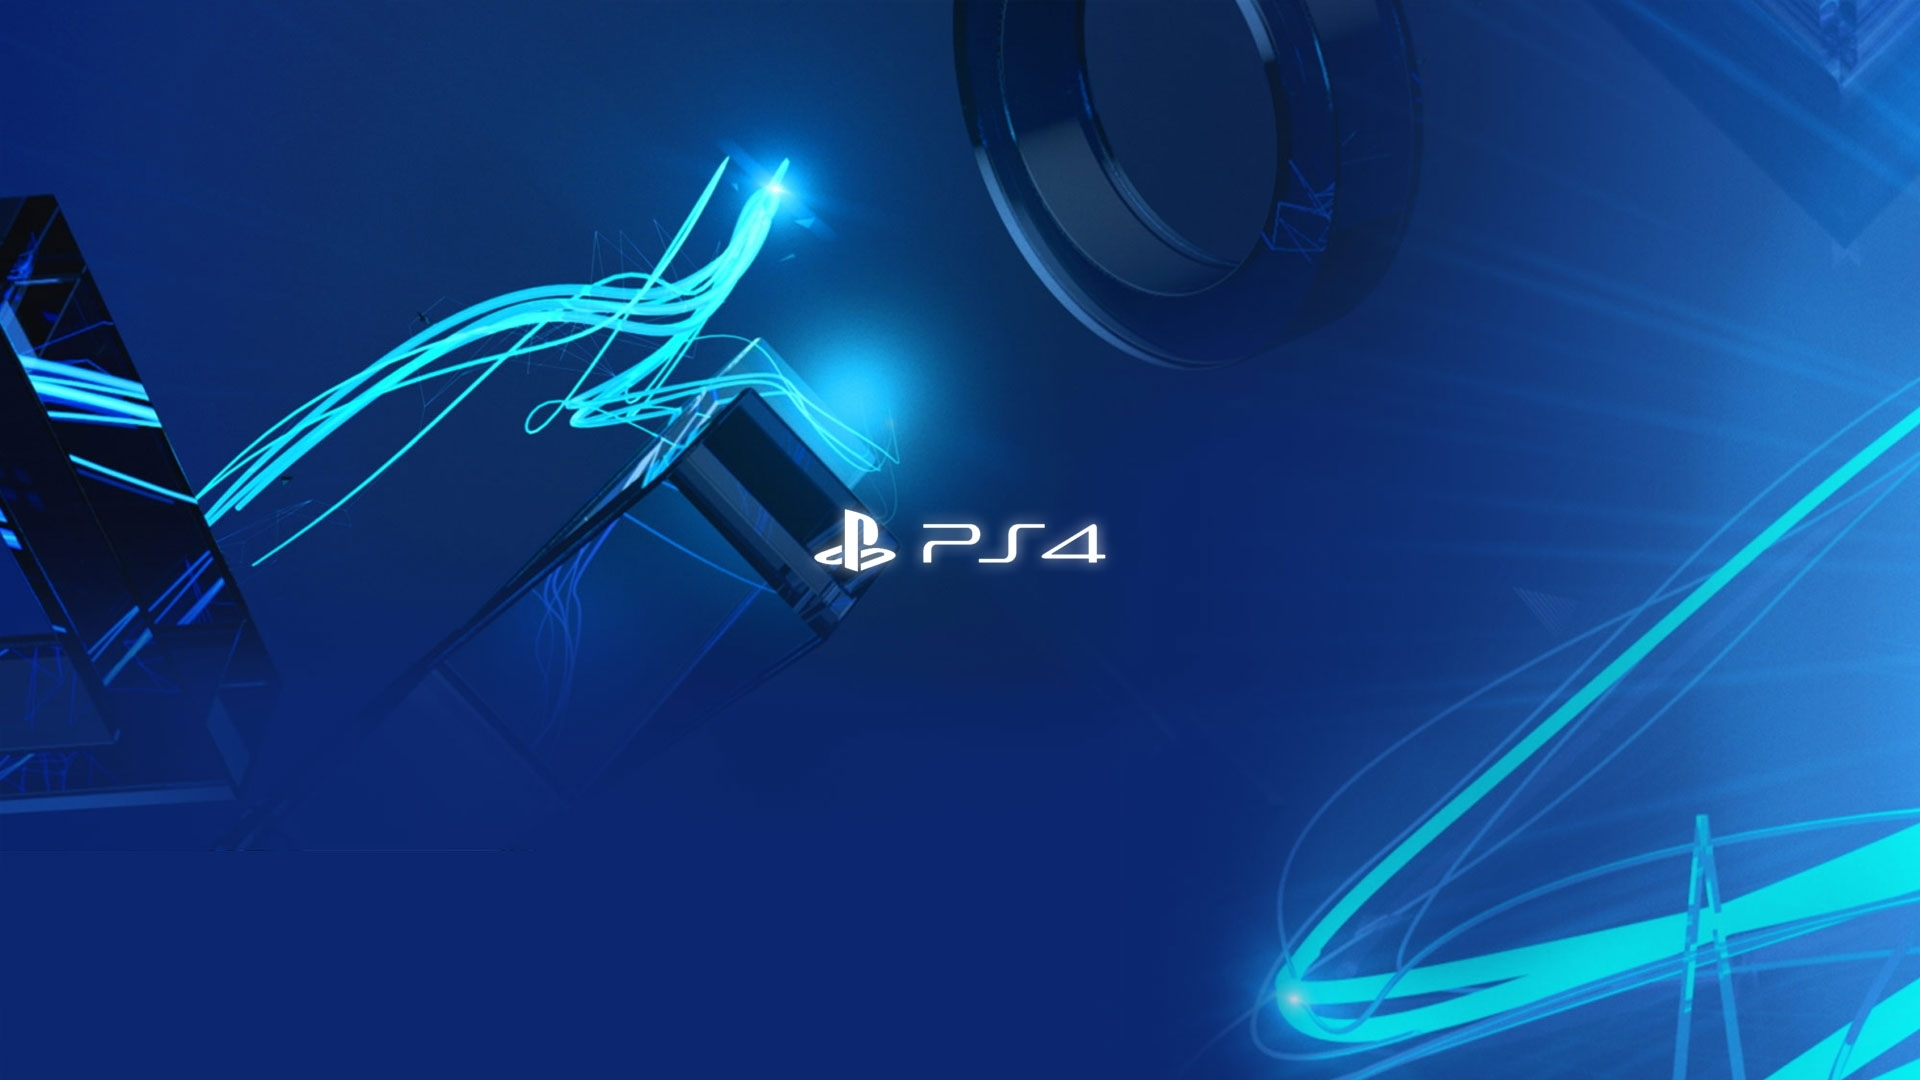 playstation 4 wallpapers hd | best playstation games - mejores